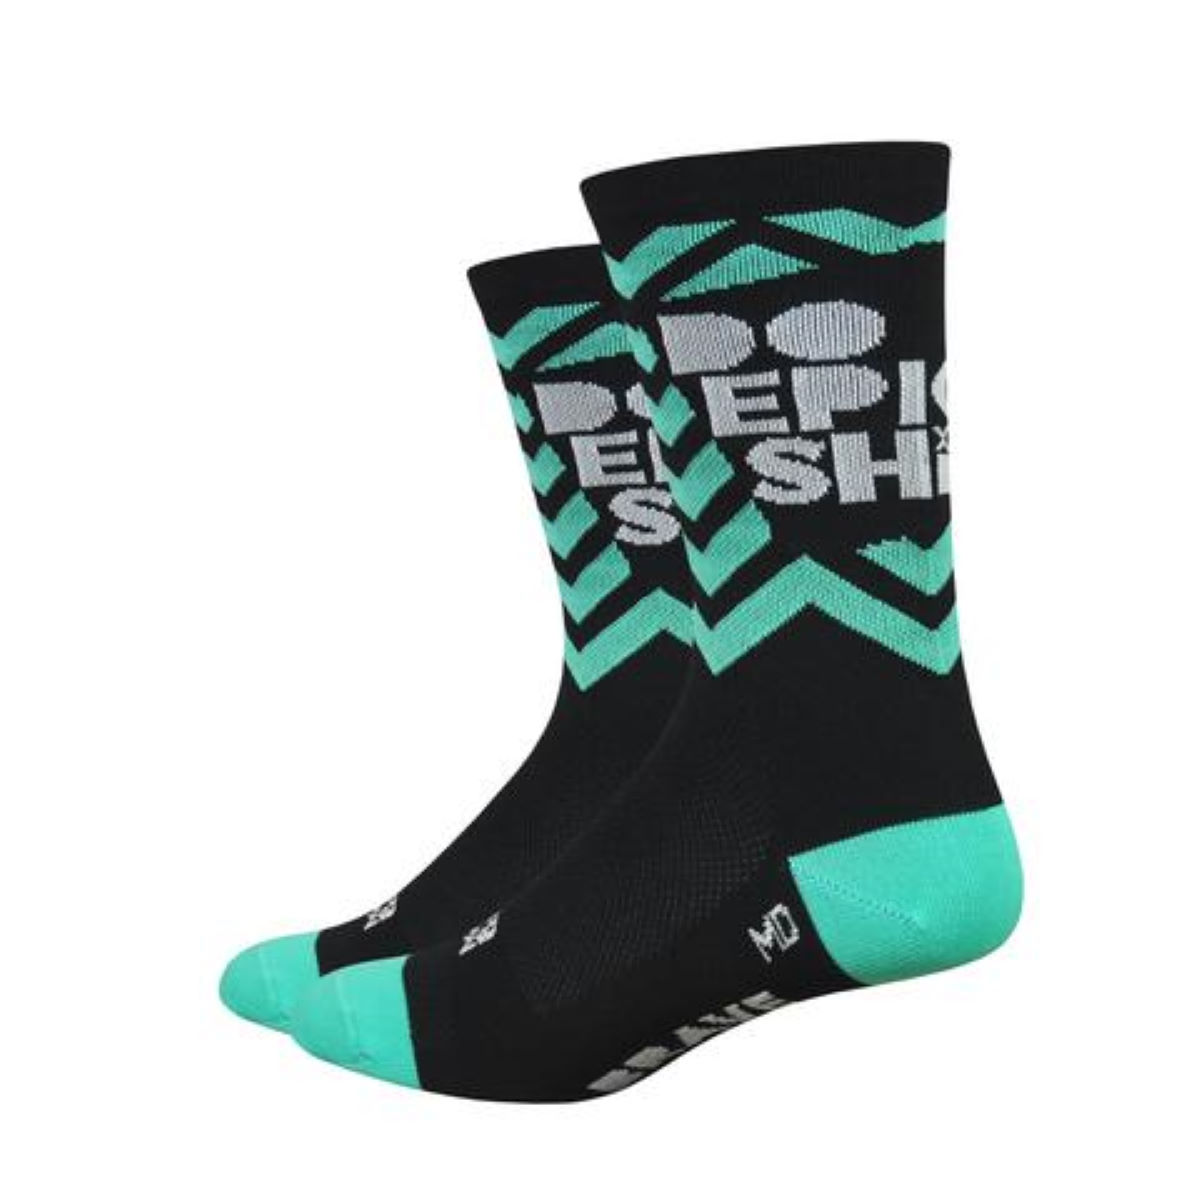 "DeFeet DeFeet Aireator 6"" Do Epic Sh%t Socks   Socks"